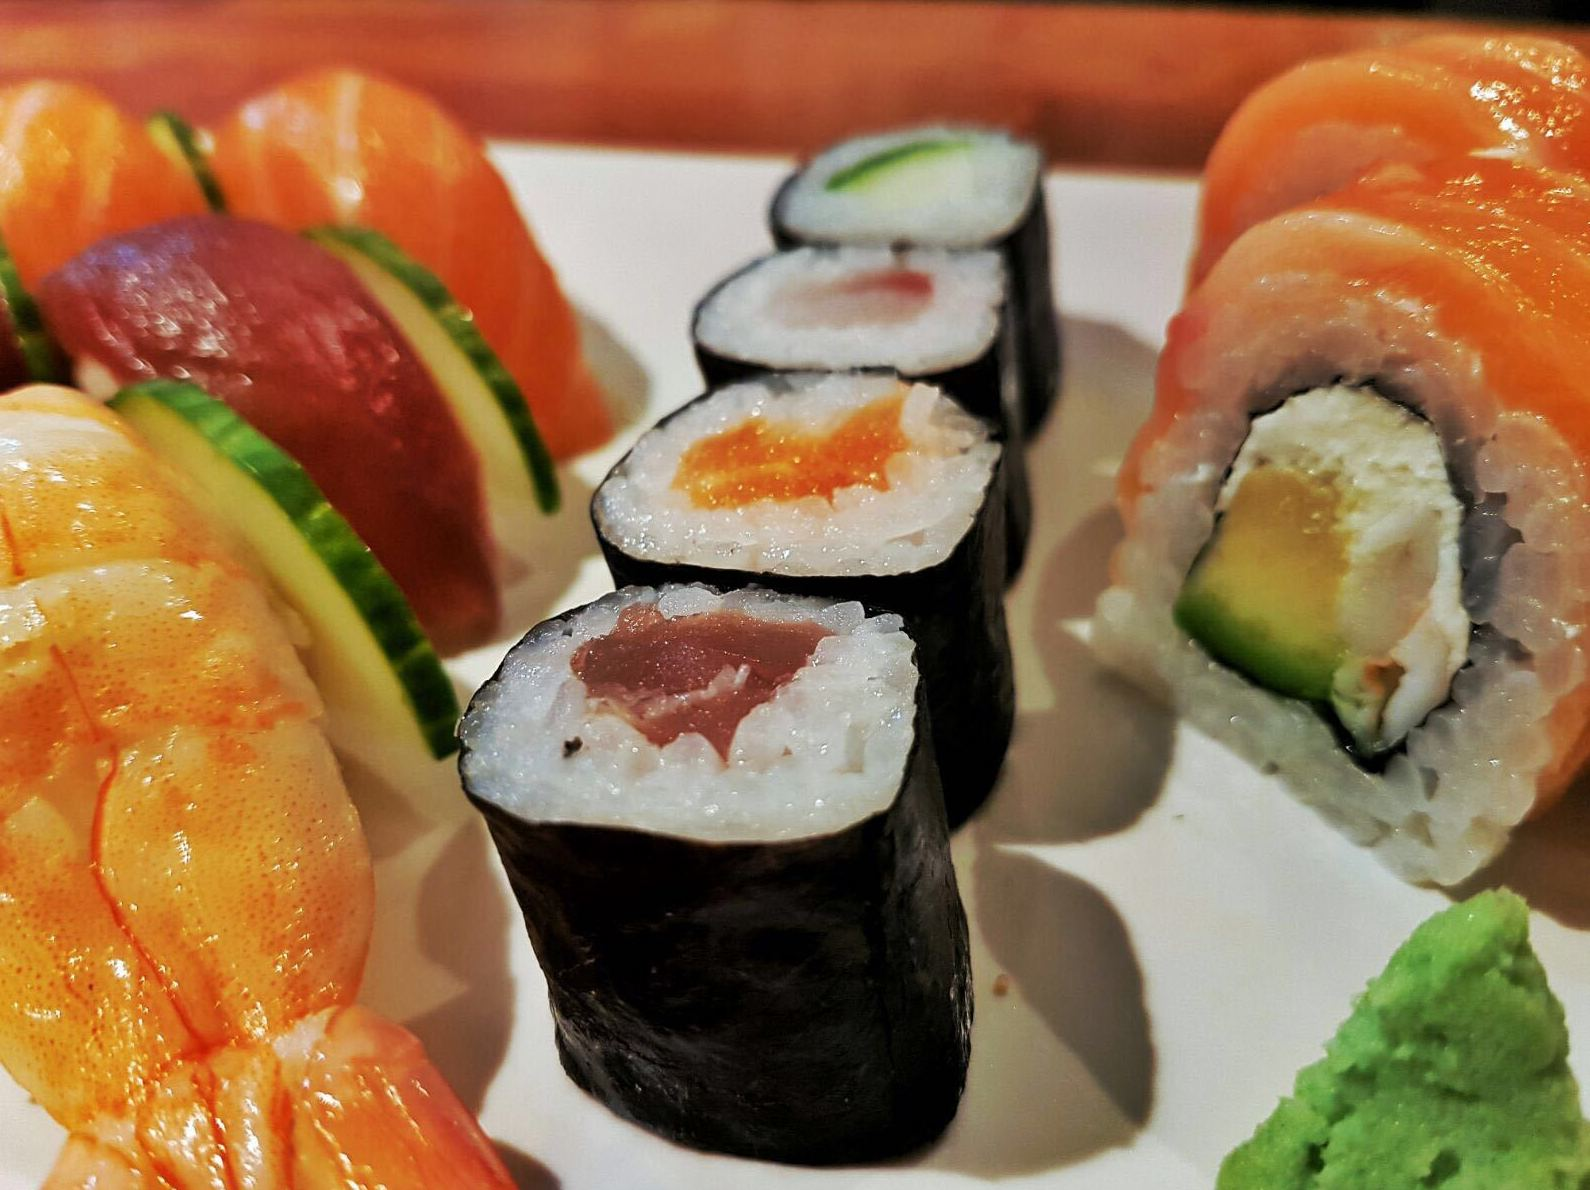 Makis (4 piezas - 4 pieces): Carta de Sushis Ibiza